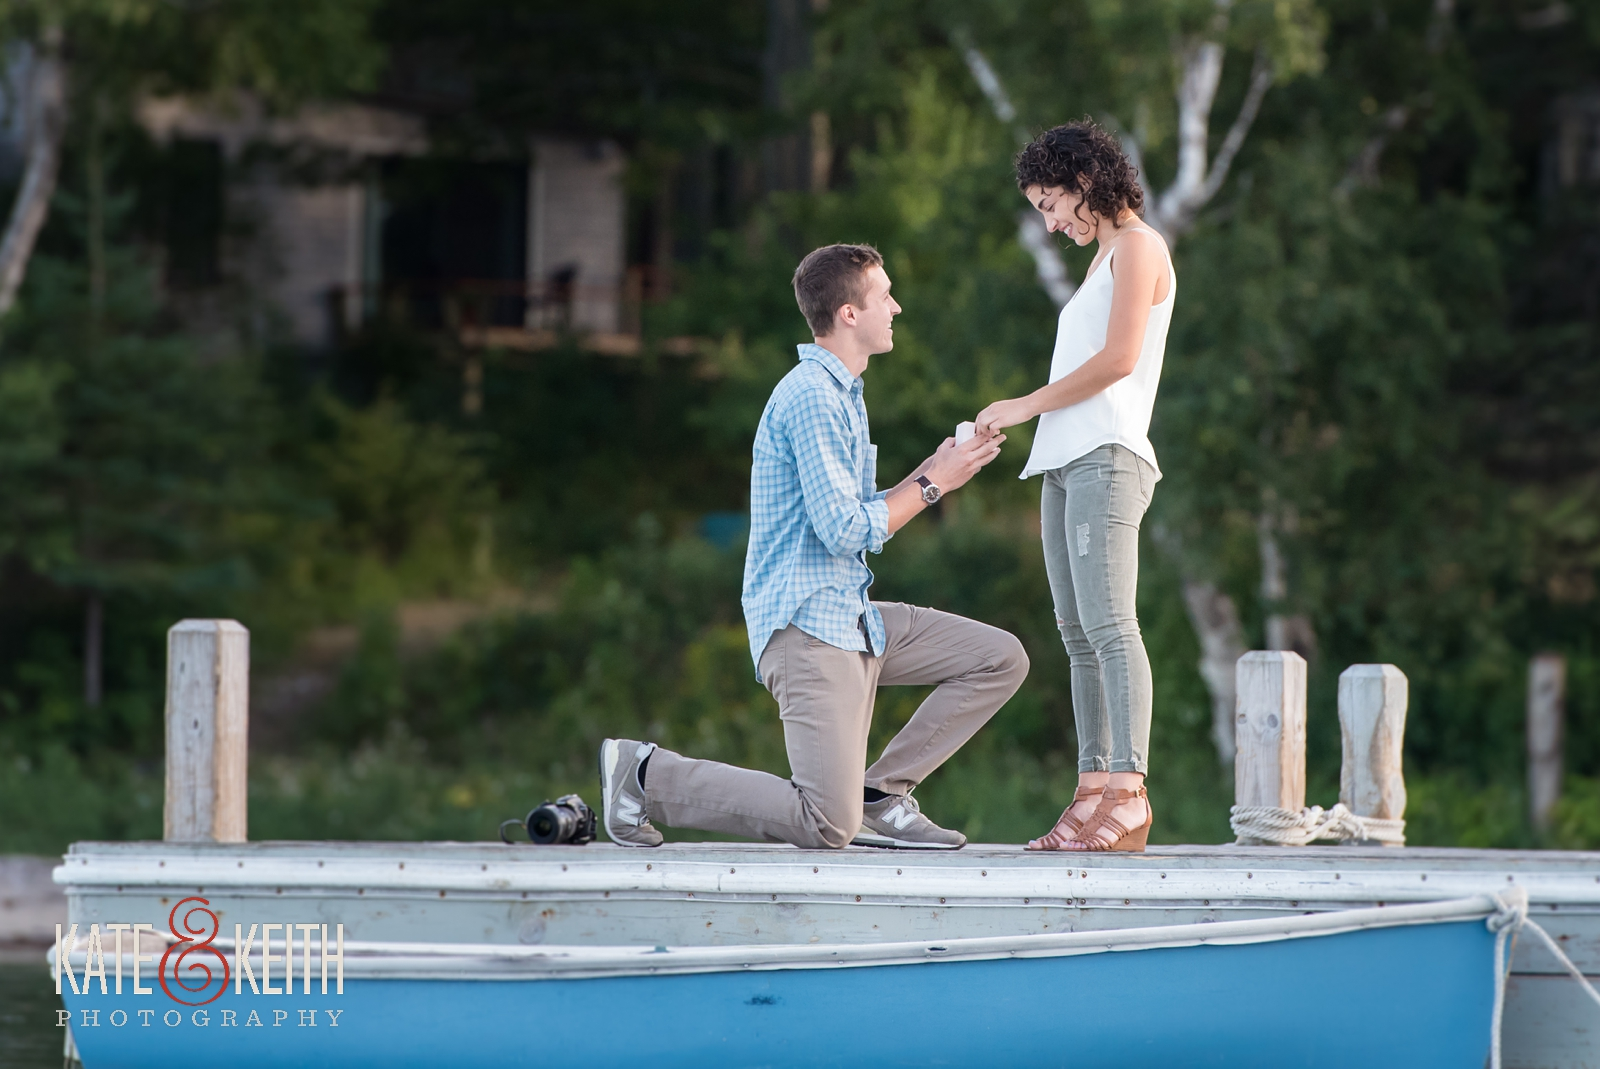 Surprise proposal, secret proposal photos, proposal in Acadia National Park, Southwest Harbor, Mount Desert Island, seaside, sunset proposal, engagement, getting engaged in Acadia National Park, rowboat, coastal Maine, New England, sailboats, dock, waterfront engagement